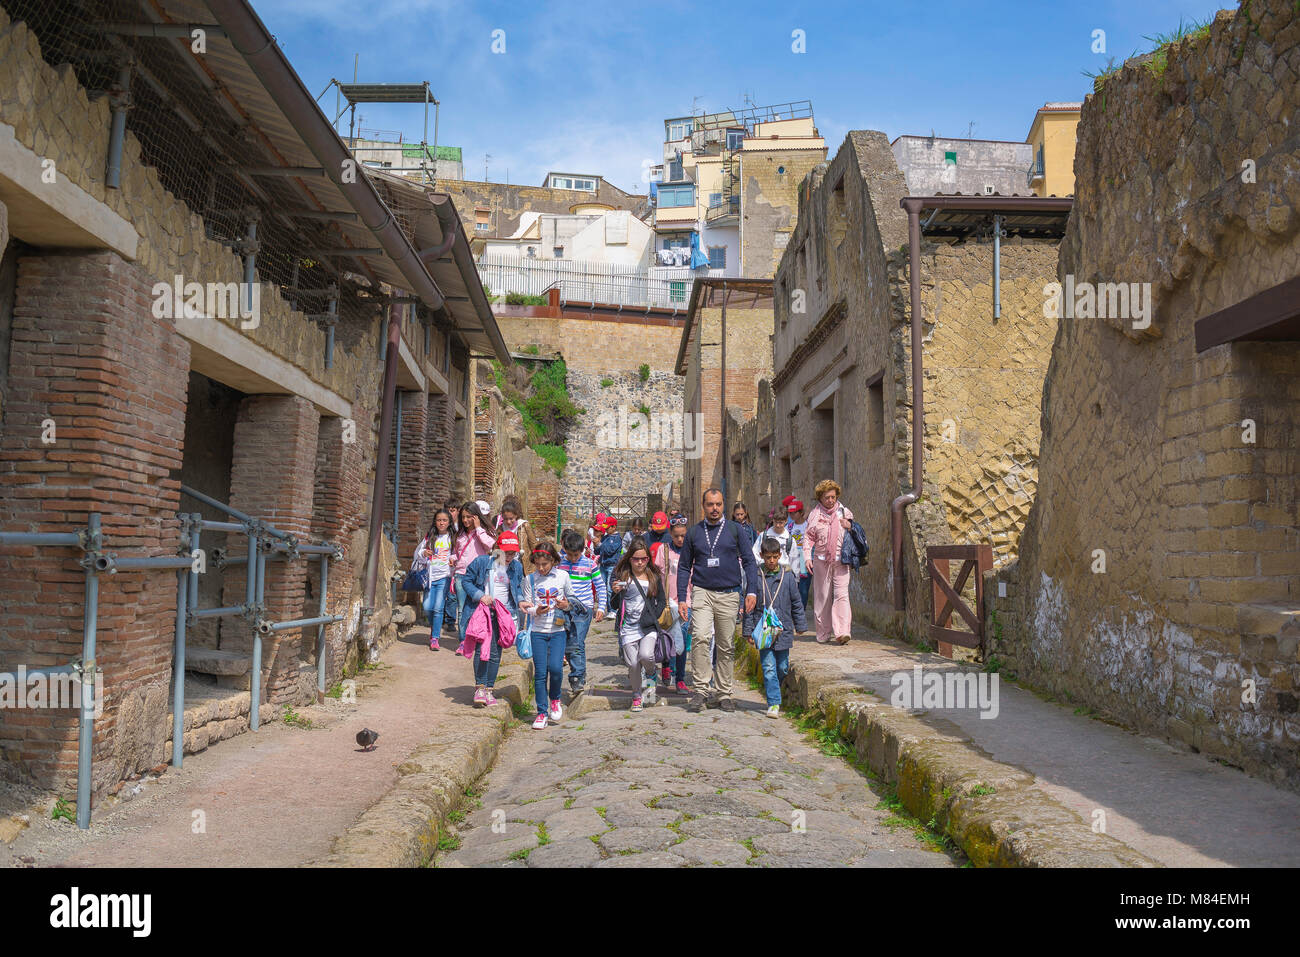 School trip Italy, a party of schoolchildren led by their teacher walk along an excavated Roman street in Herculaneum, - Stock Image